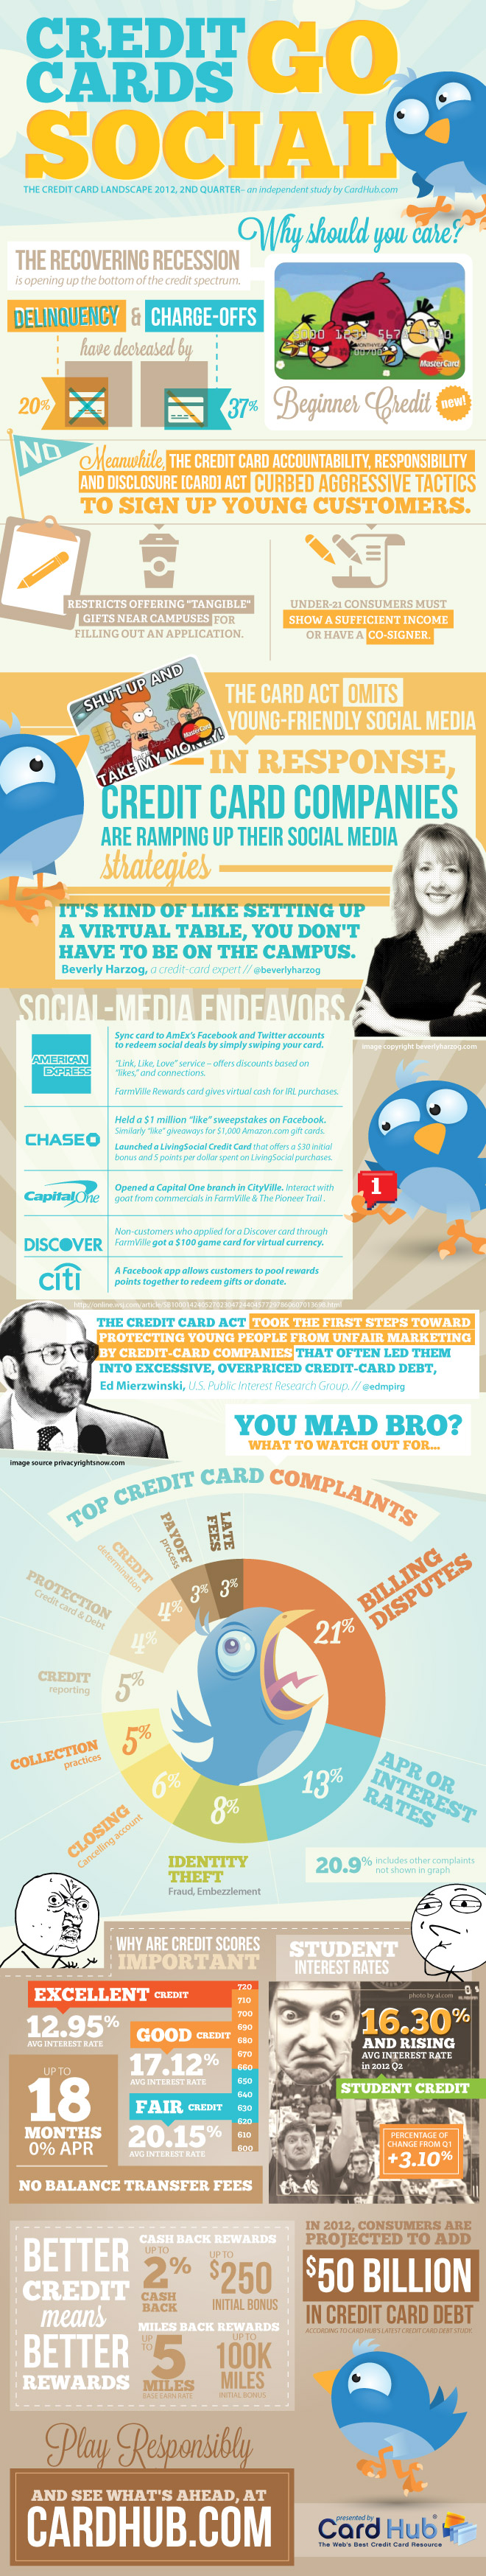 Credit Cards Go Social [INFOGRAPHIC]